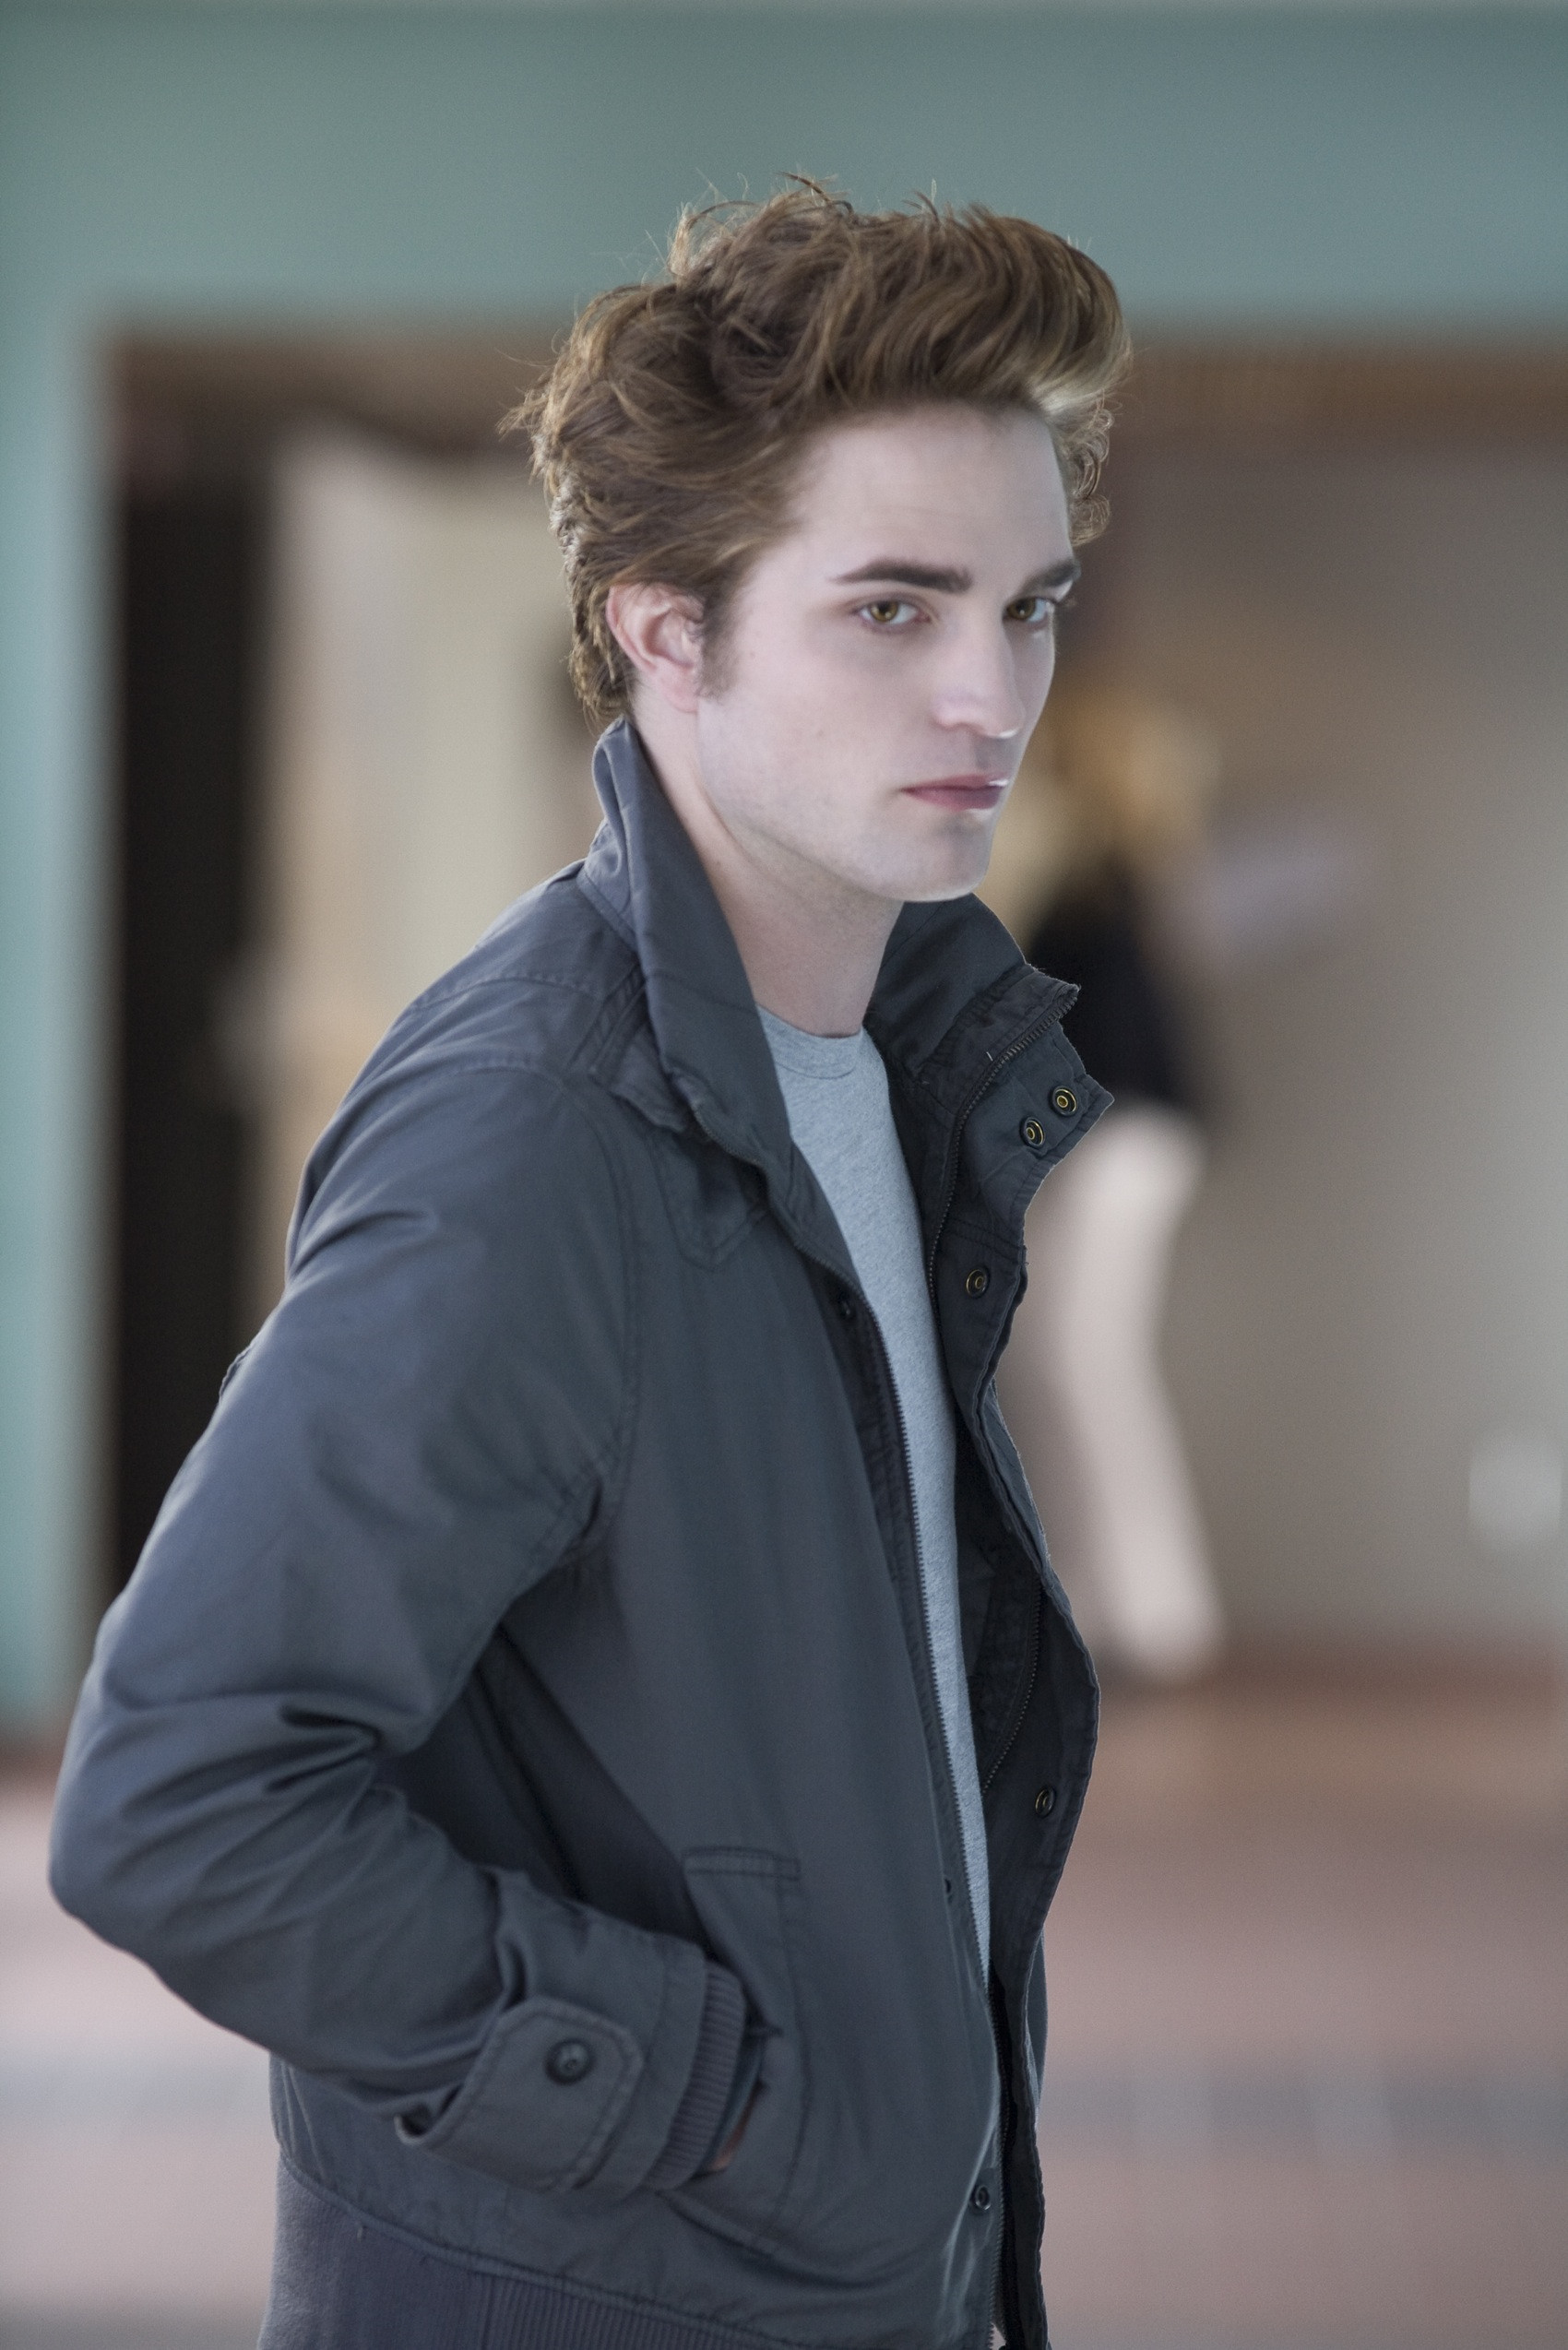 imagens Edward in Twilight - Edward Cullen Photo (30128800) - Fanpop